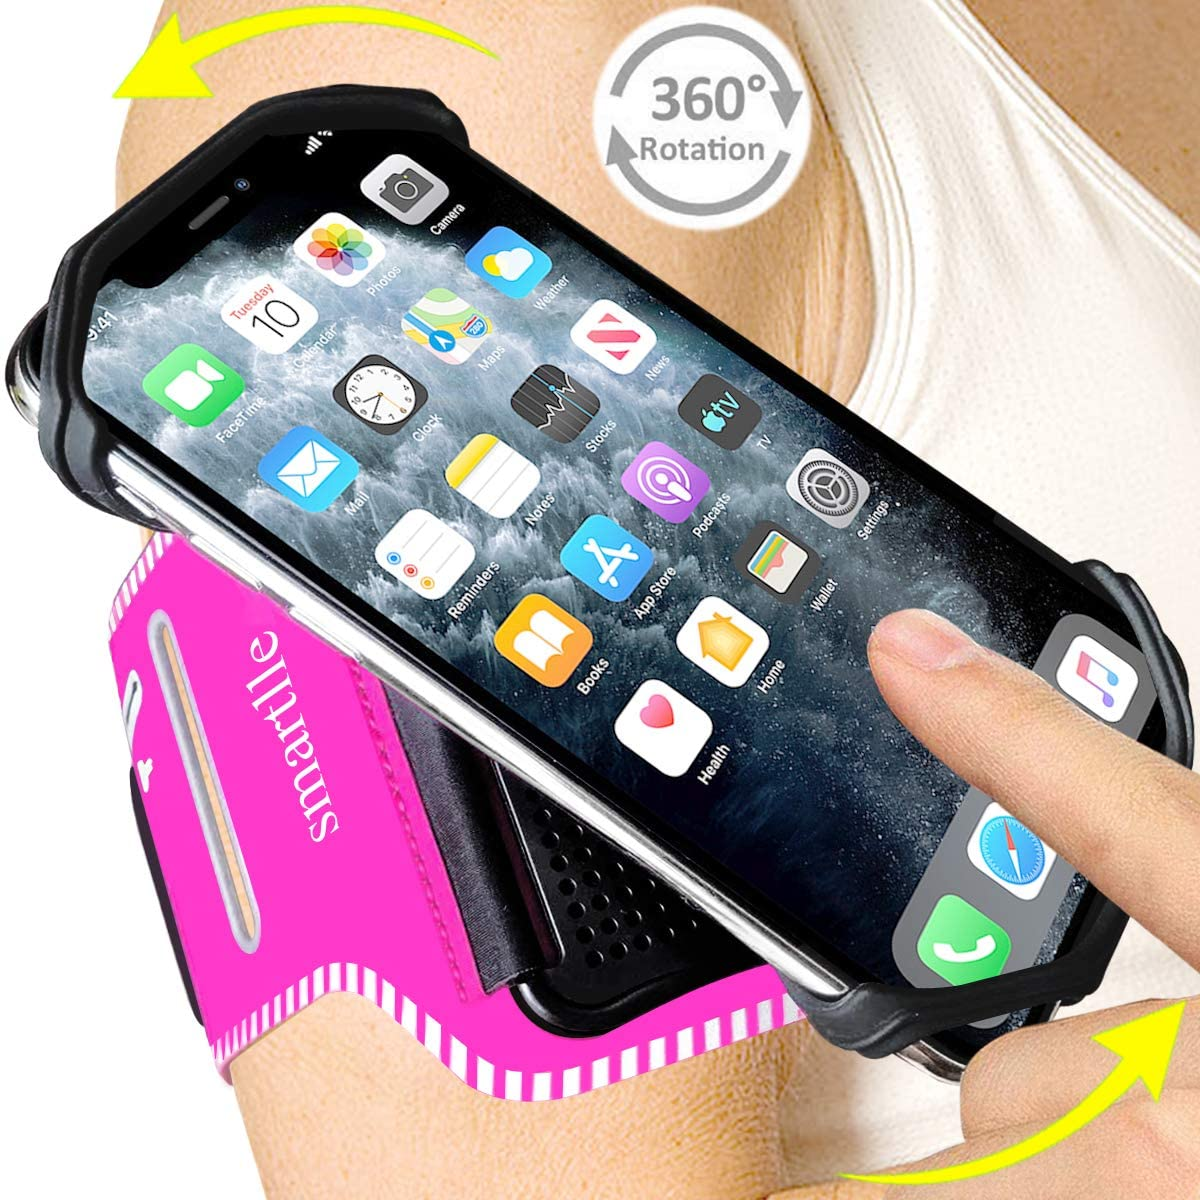 Smartlle Phone Armband, 360° Rotatable Premium Sports Armband for All Phones: iPhone 11/11 Pro/11 Pro Max/XR/XS Max/X/XS/8 7 6S Plus, Samsung Galaxy, LG, Moto, Pixel; for Running Workout Gym Jogging